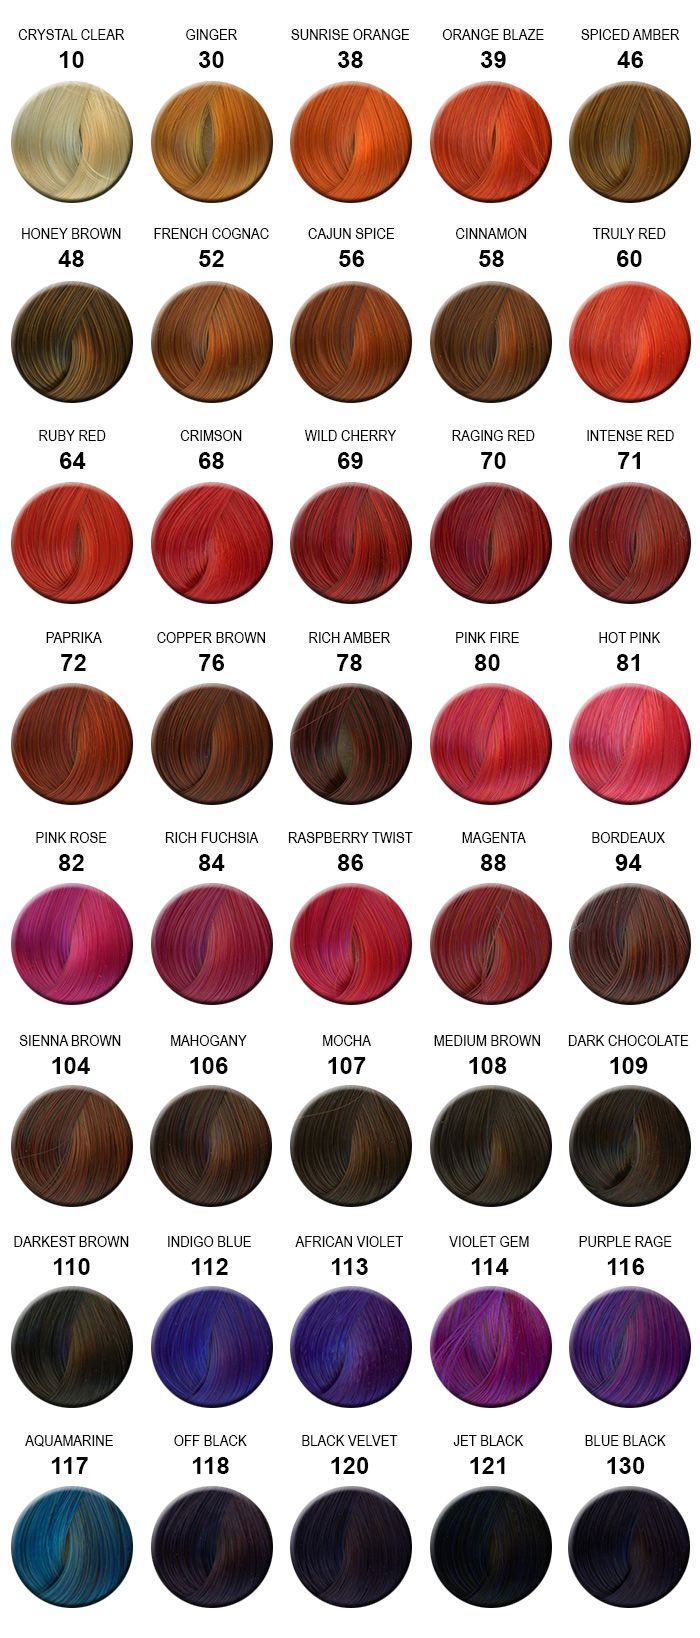 Adore creative image colors hair care also semi permanent color raspberry twist rh pinterest